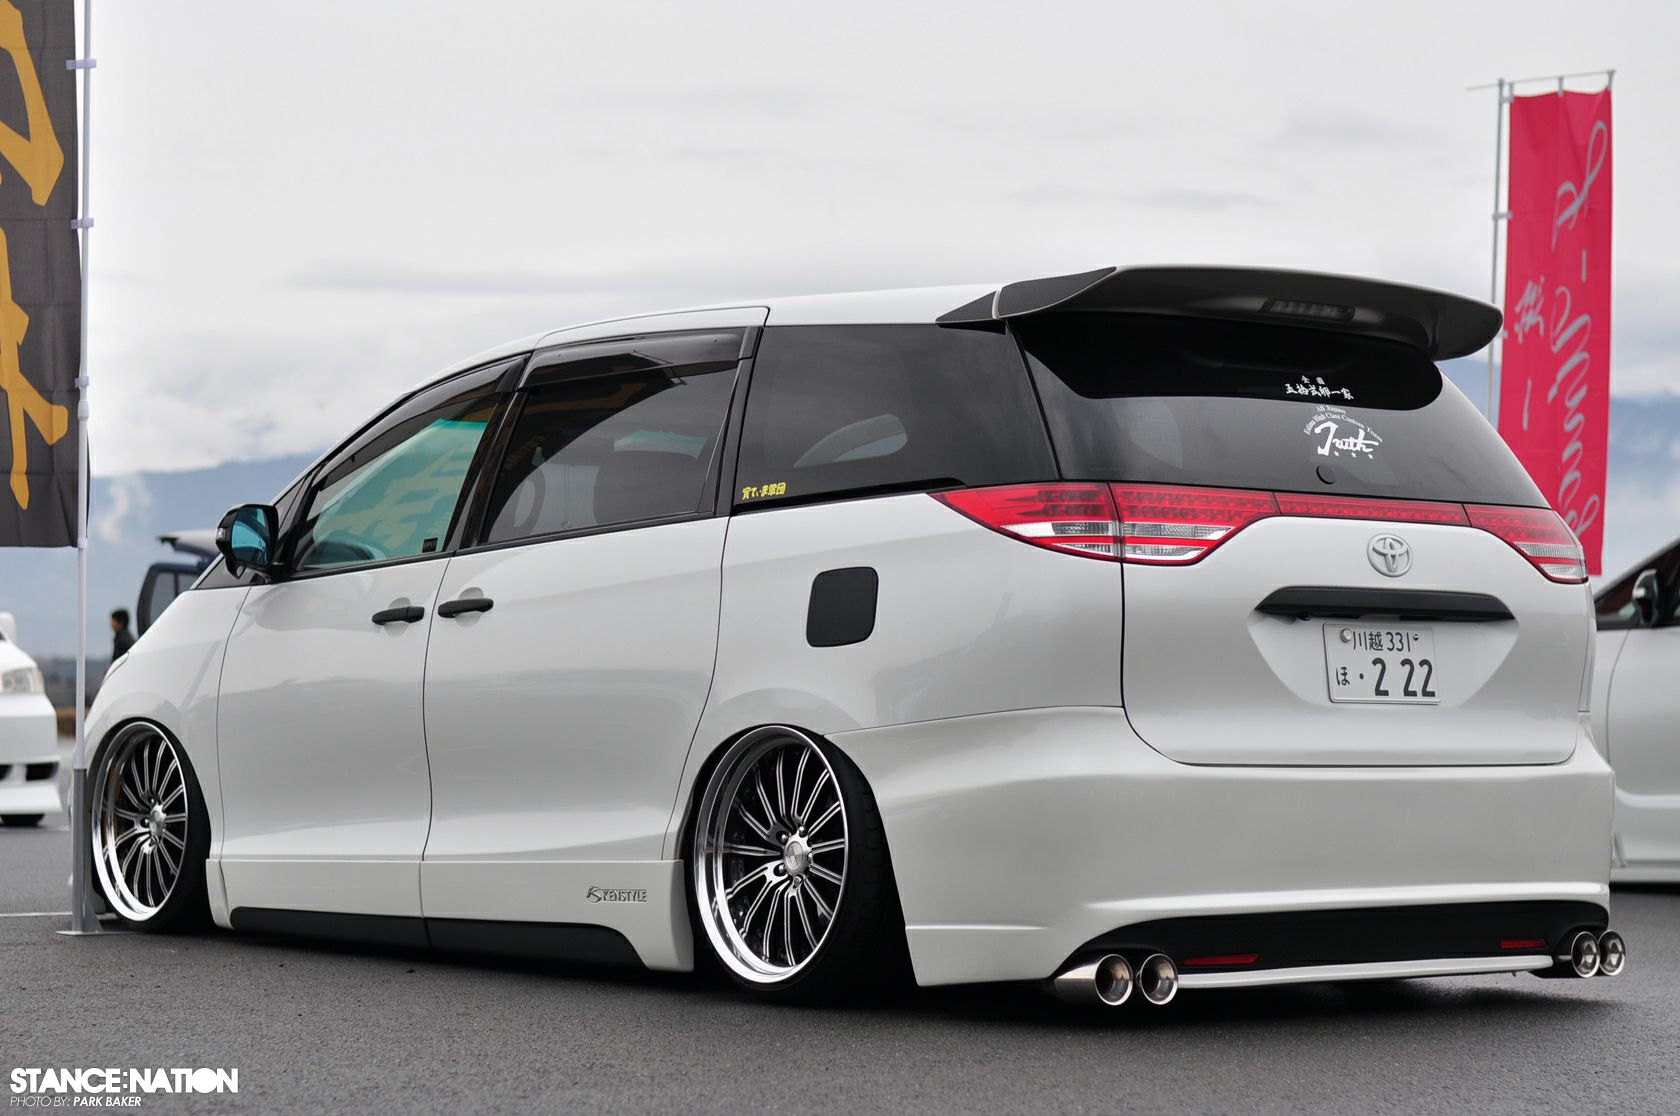 Custom honda odyssey who says you can t have fun with a minivan odyssey pinterest honda odyssey minivan and honda